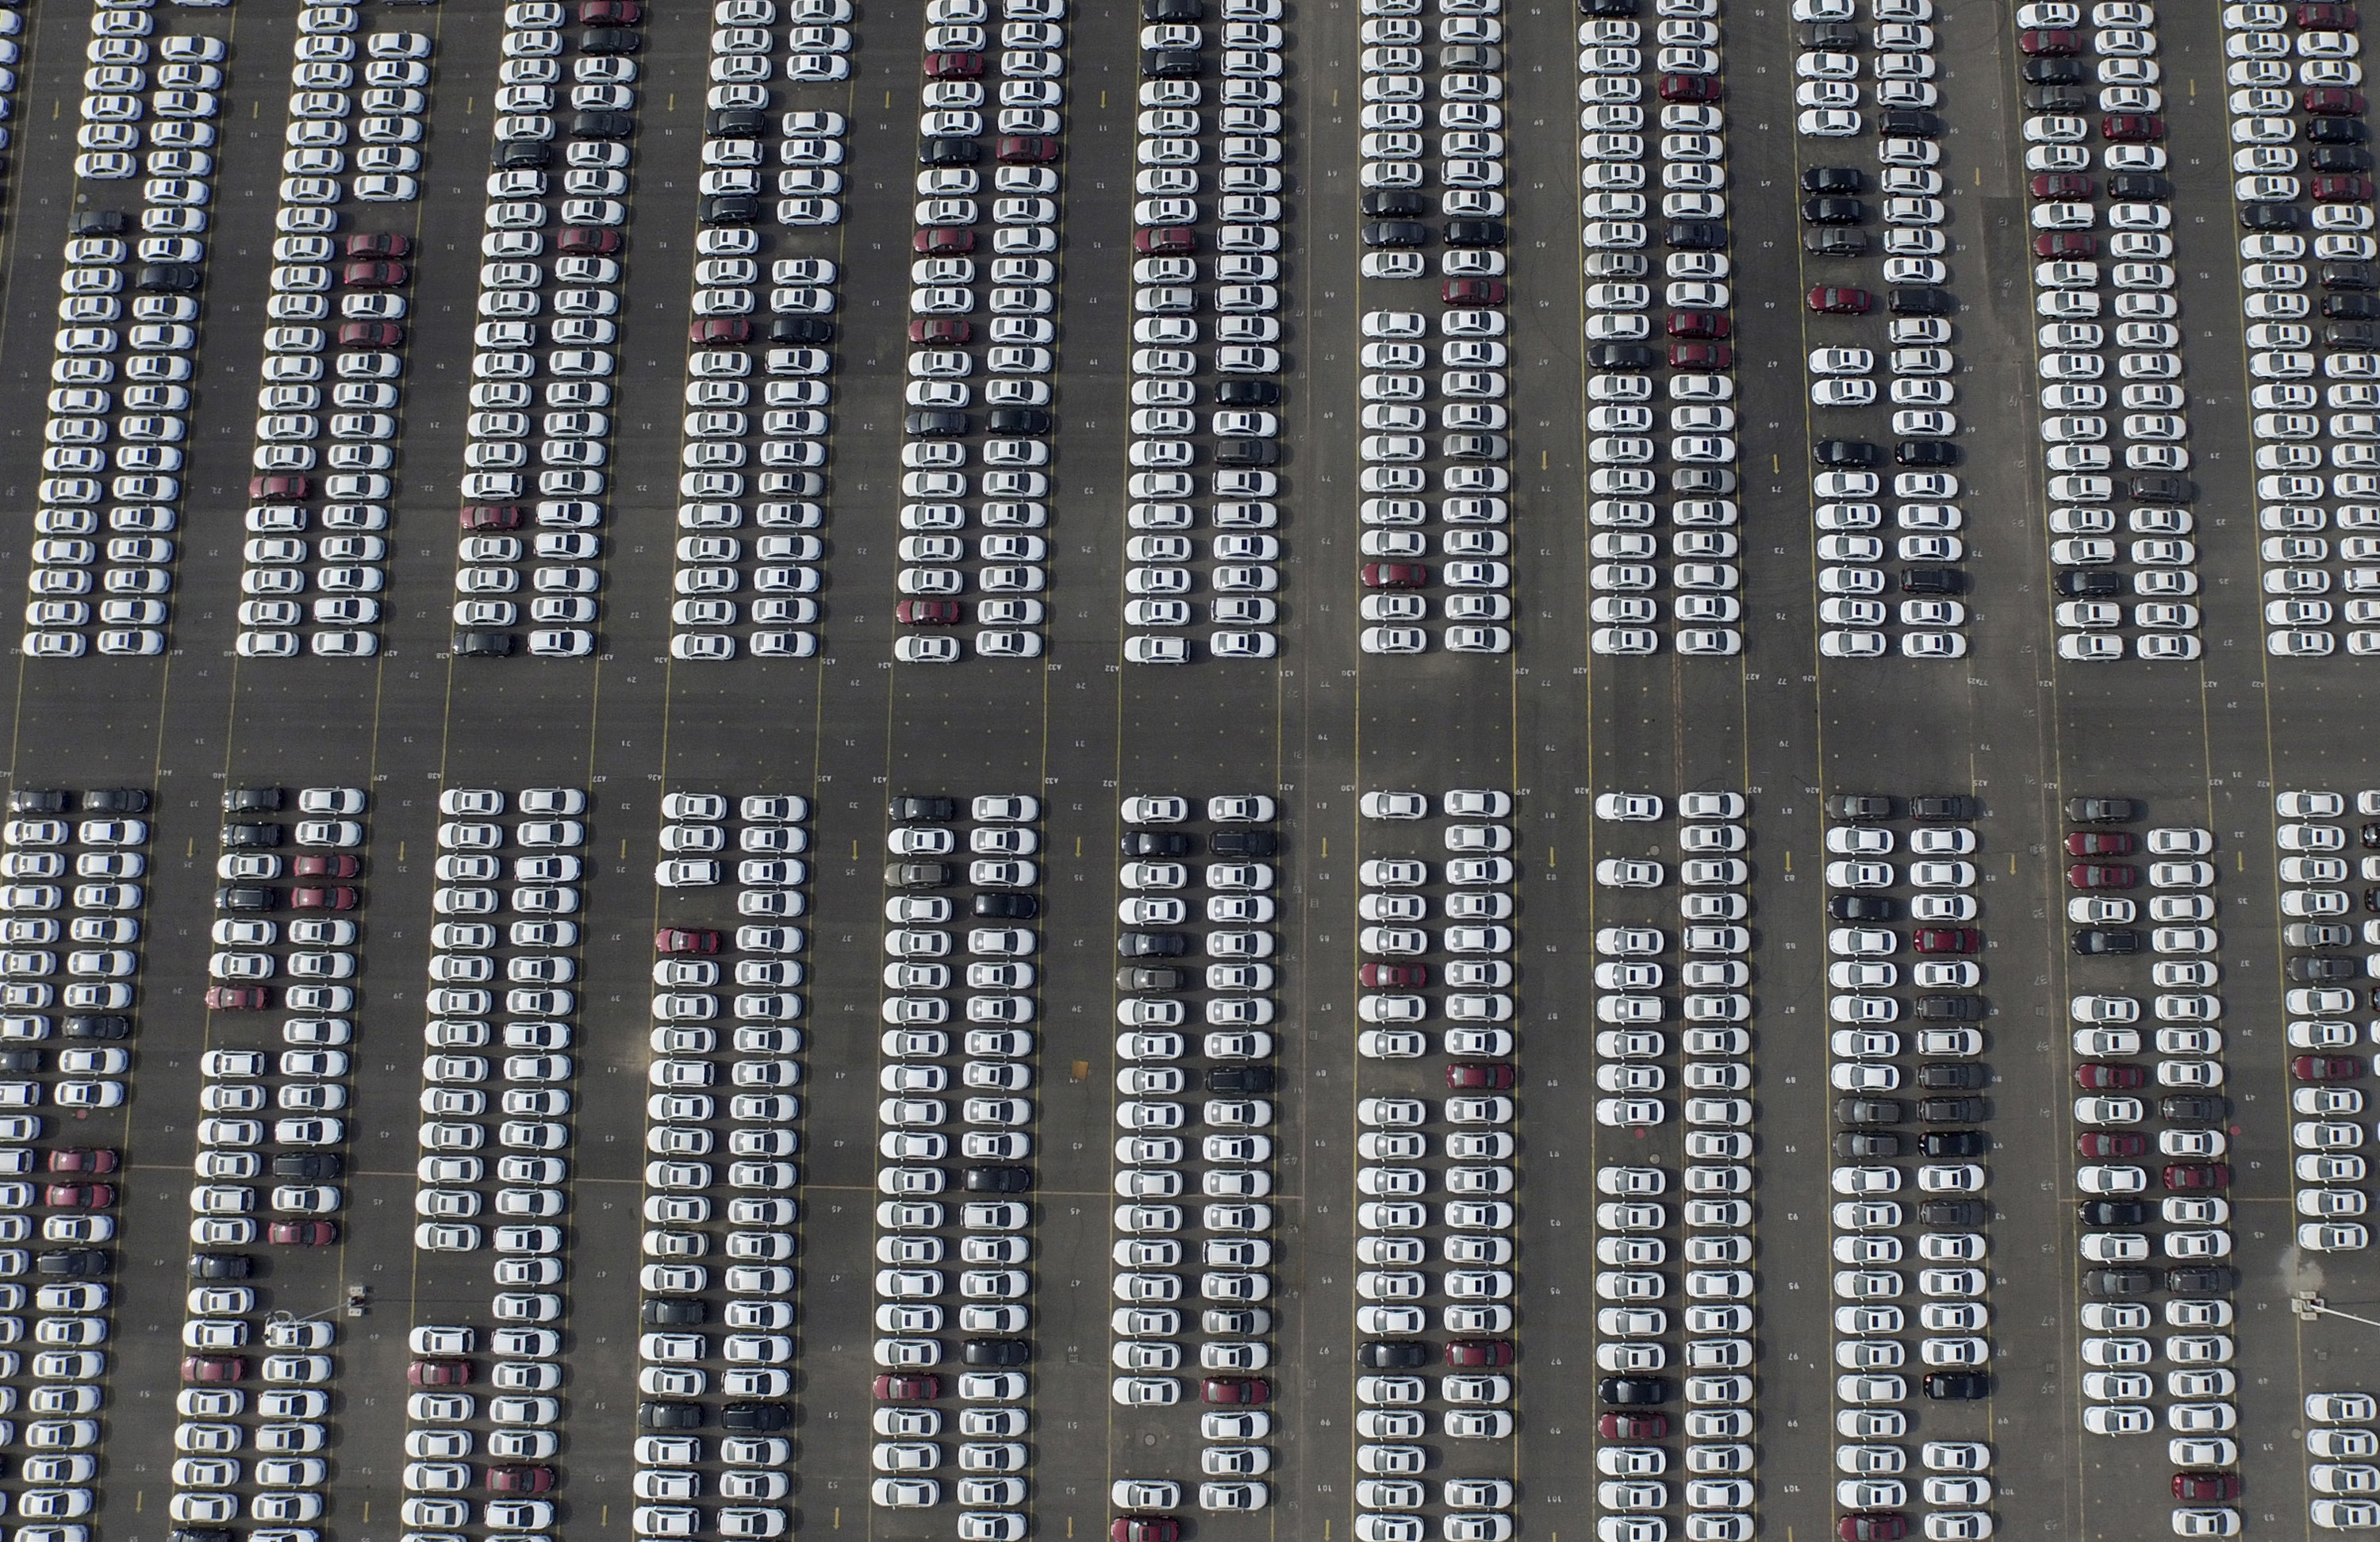 Today's Cars Are Parked 95% of the Time | Fortune